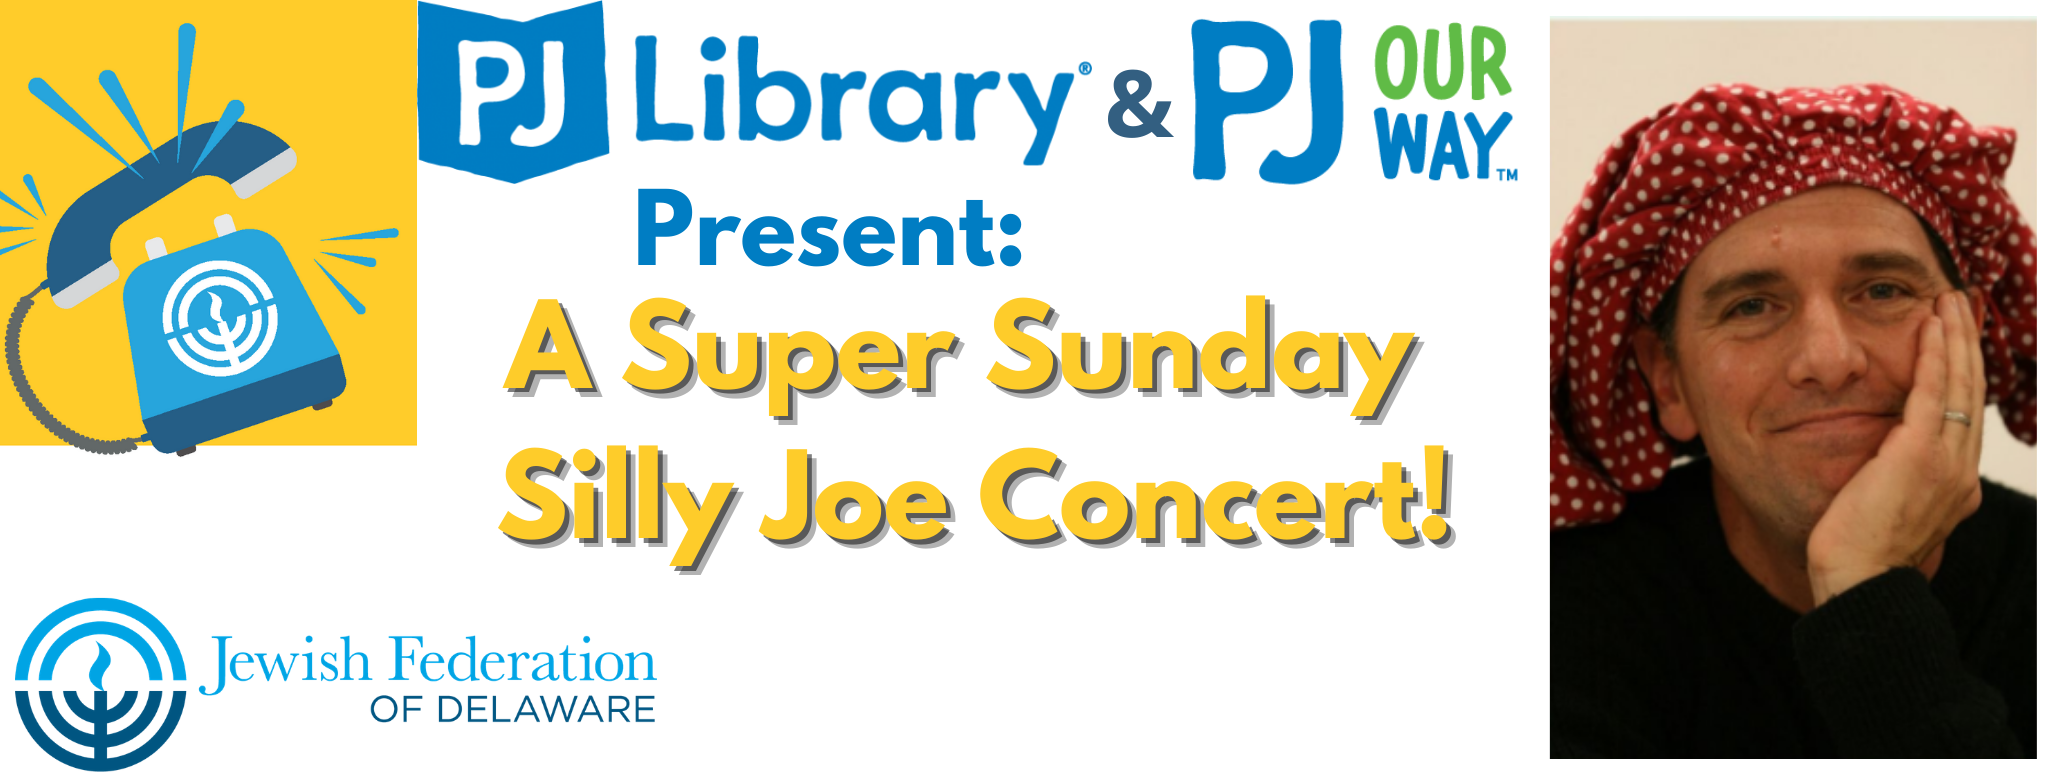 Super Sunday Silly Joe Concert